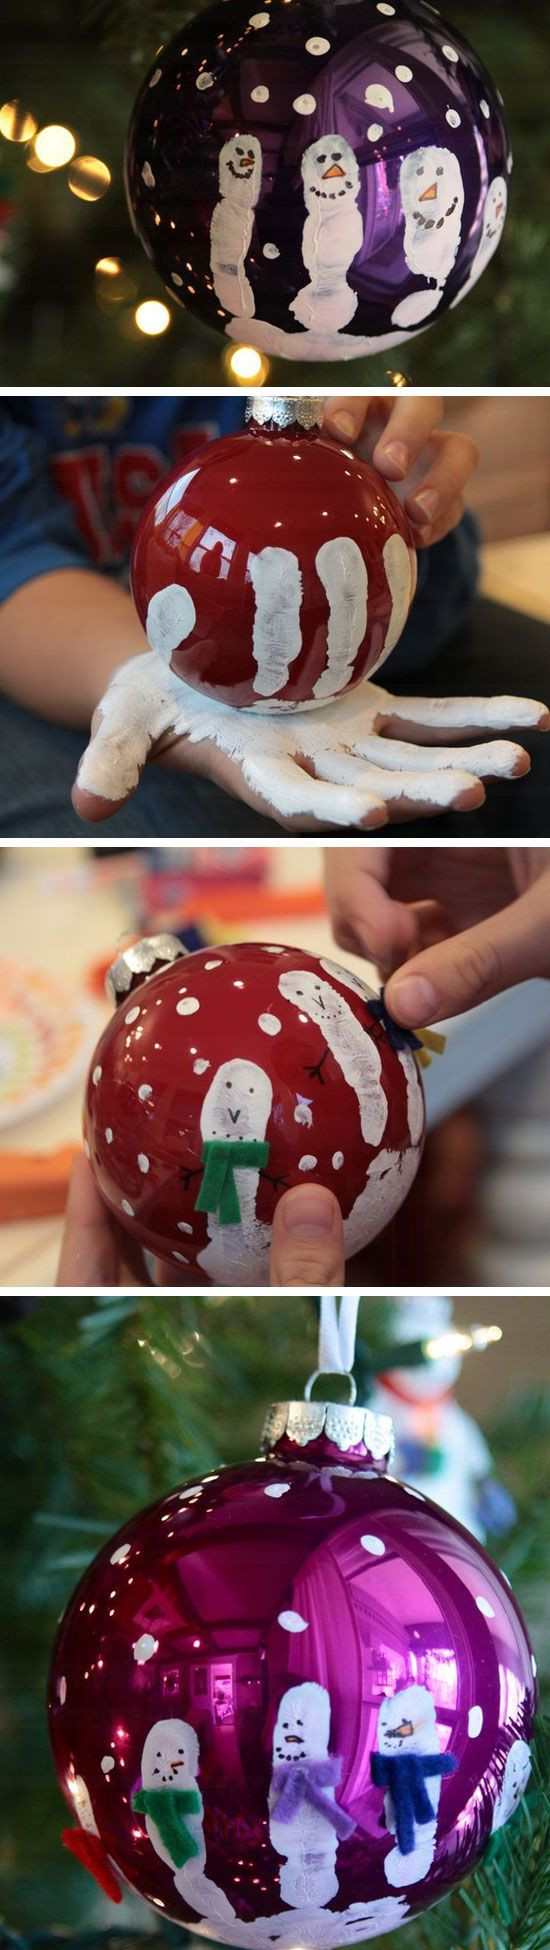 DIY Kids Christmas Craft  Easy and Cute DIY Christmas Crafts for Kids to Make Hative